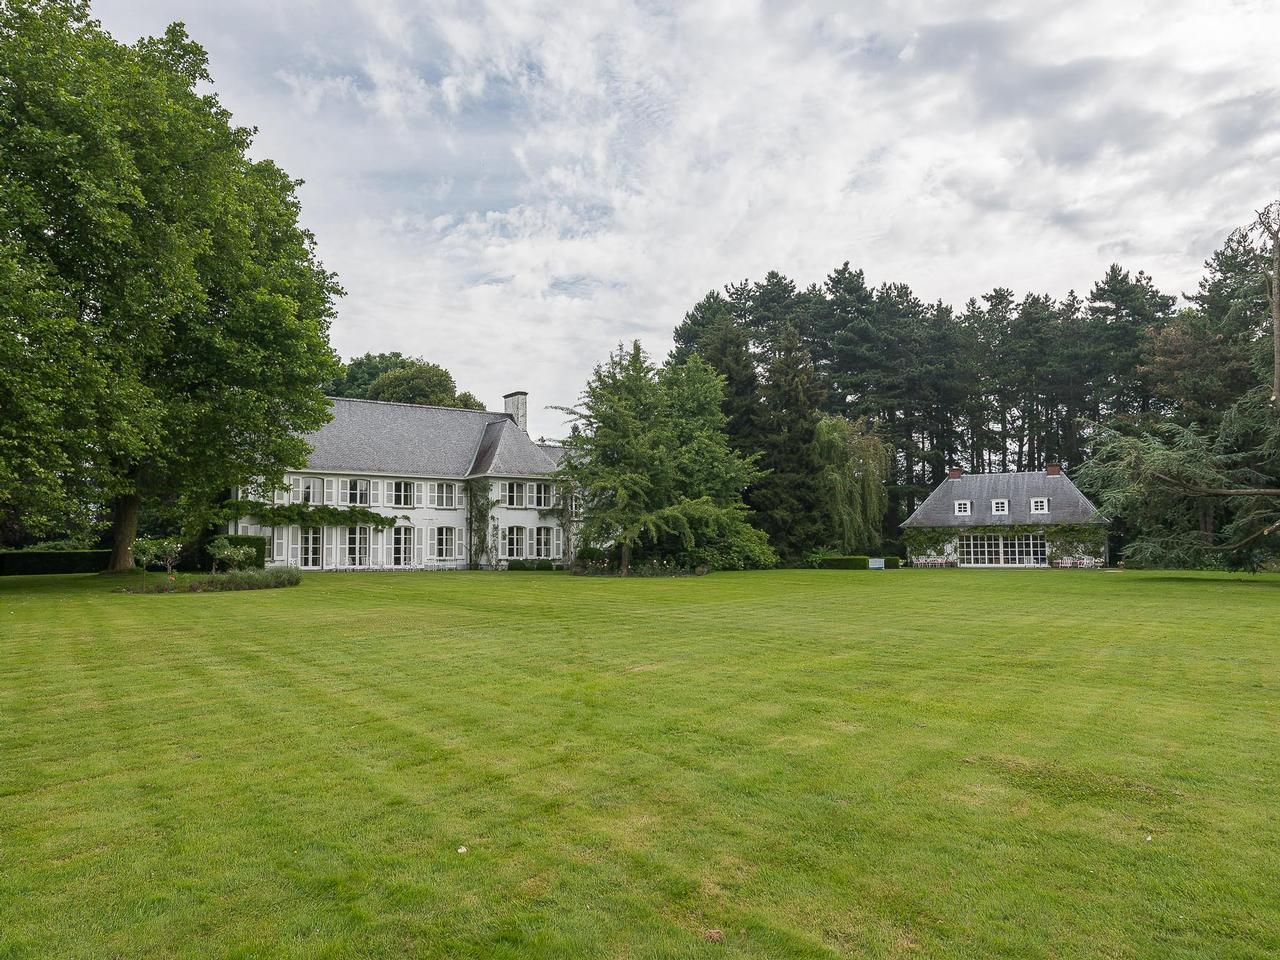 Other Residential for Sale at Louvain I Manoir et son parc Other Belgium, Other Areas In Belgium, 3020 Belgium